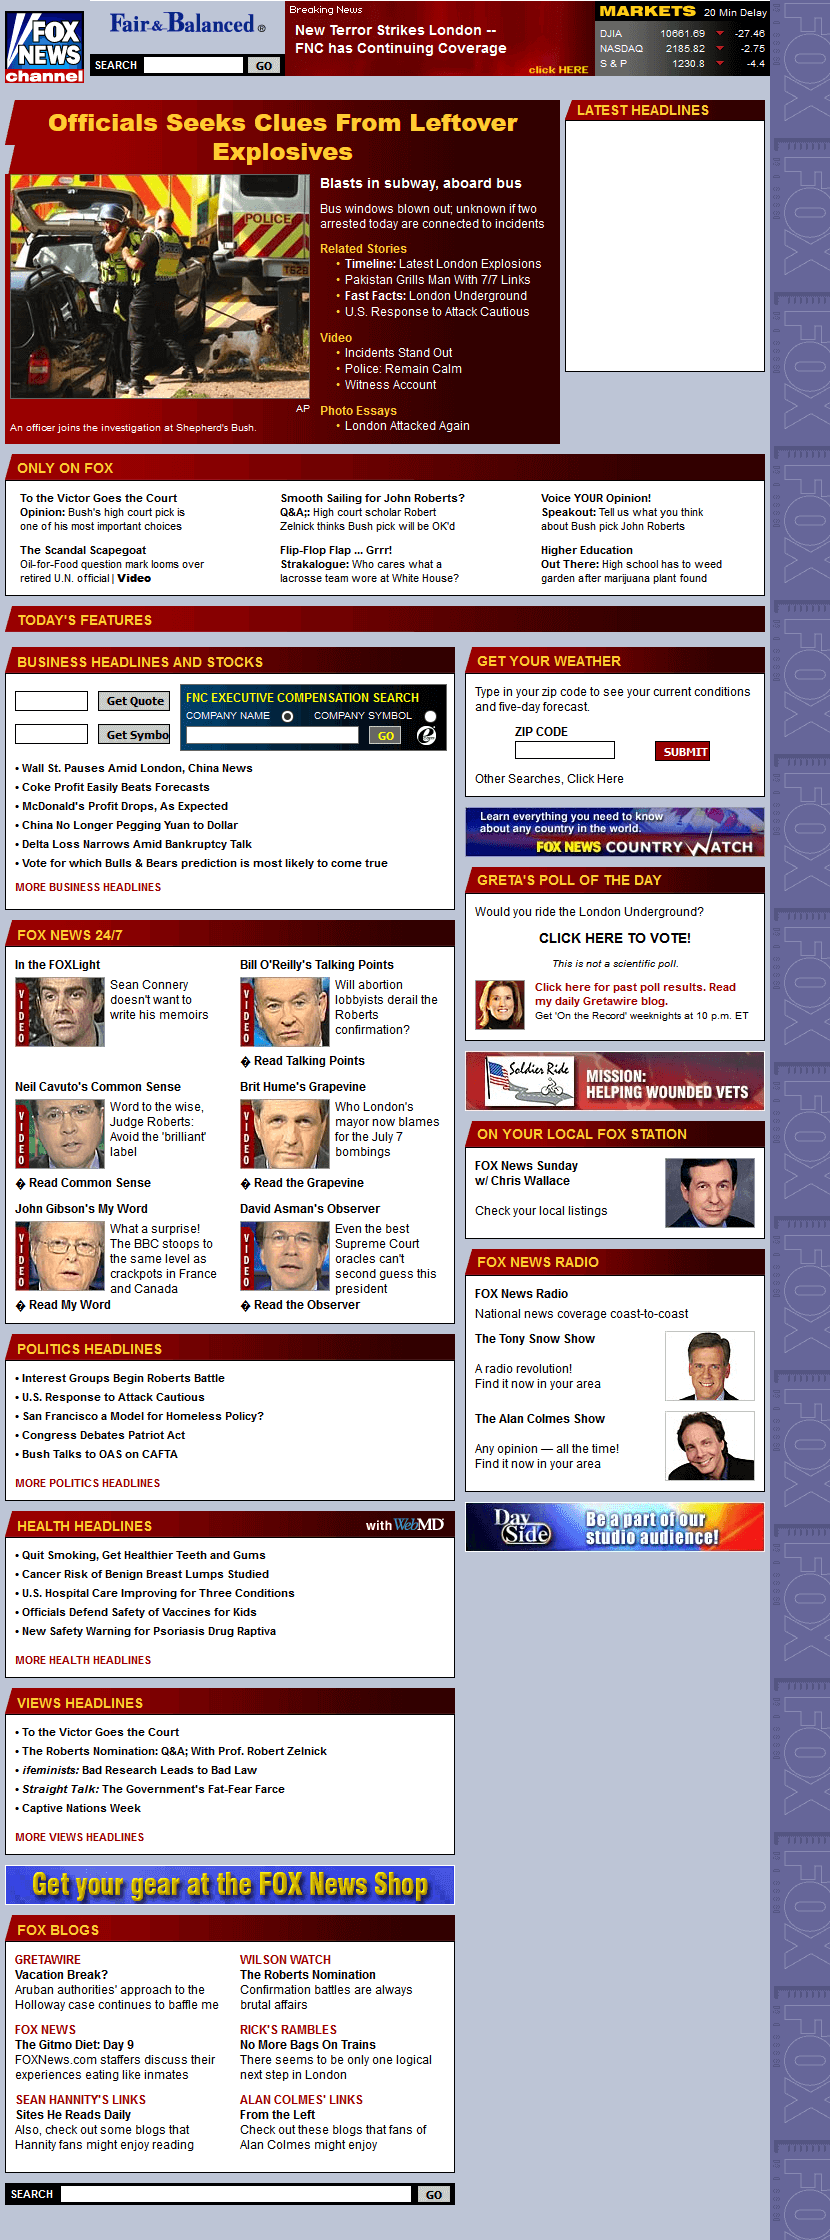 Fox News Channel in 2005